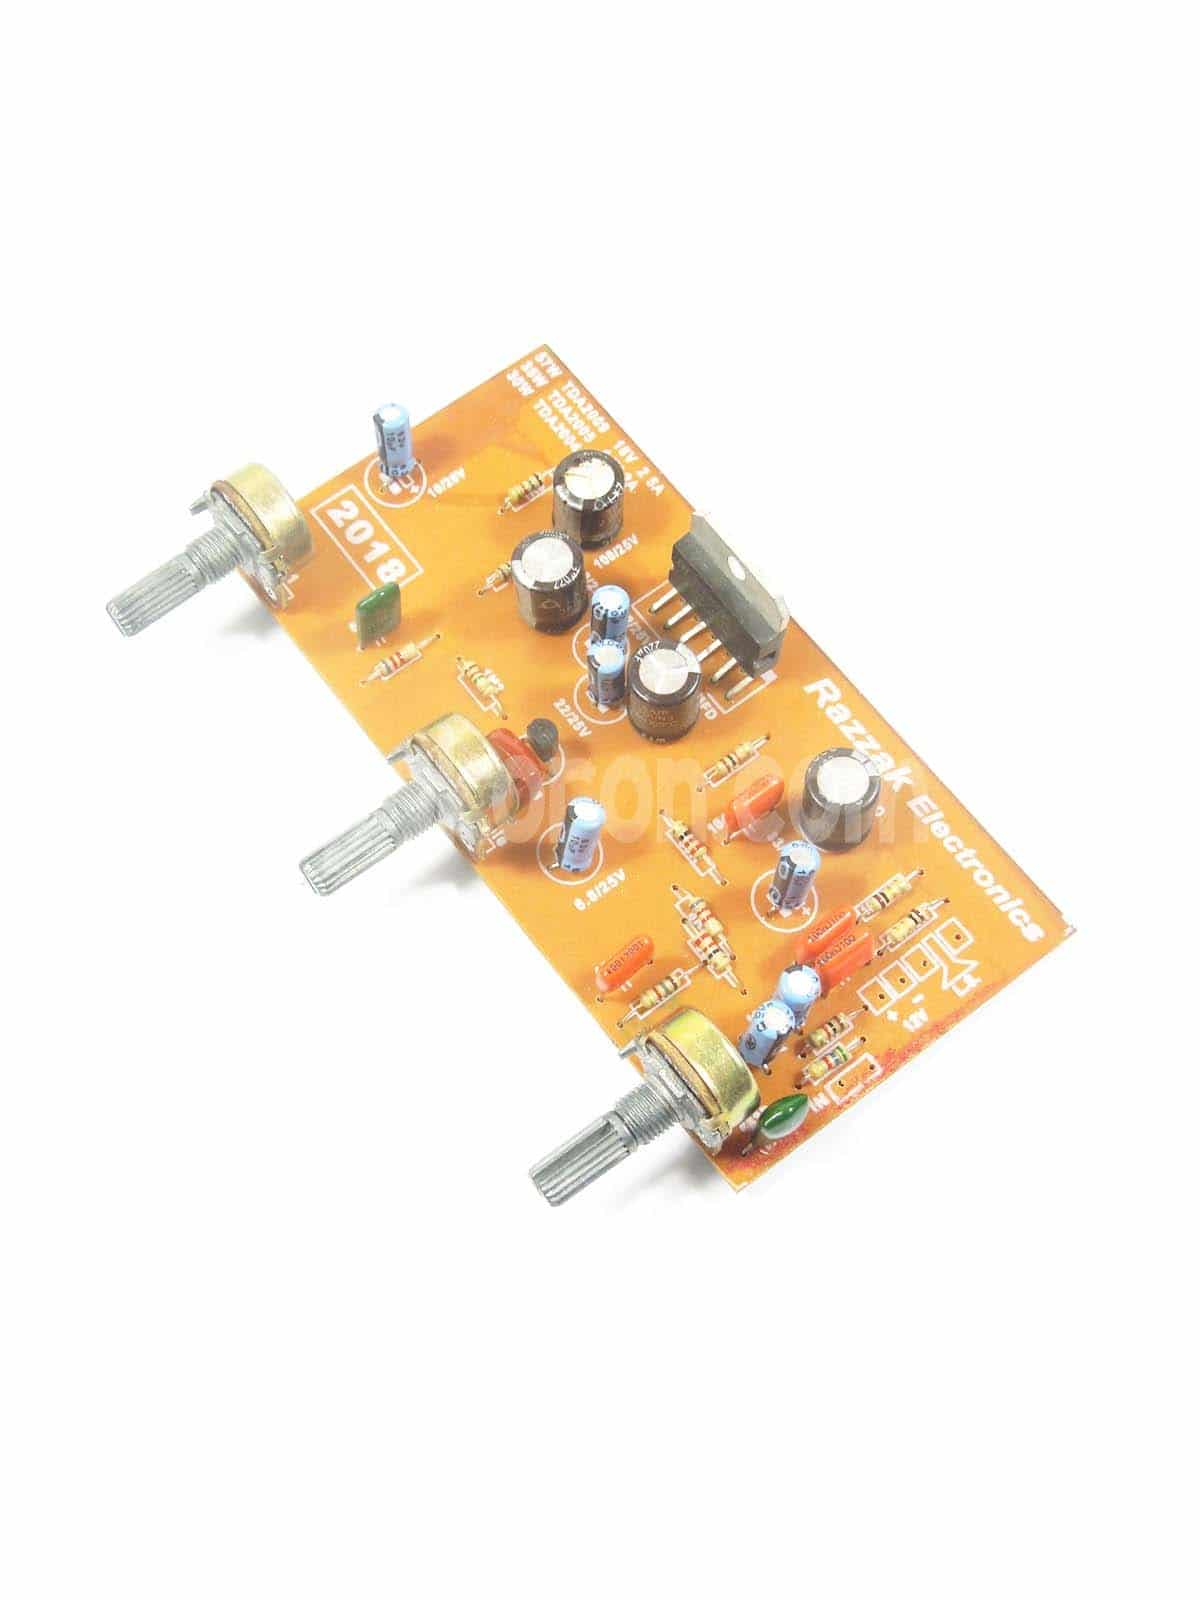 Mini Stereo Amplifier Circuit Using Tda2009a